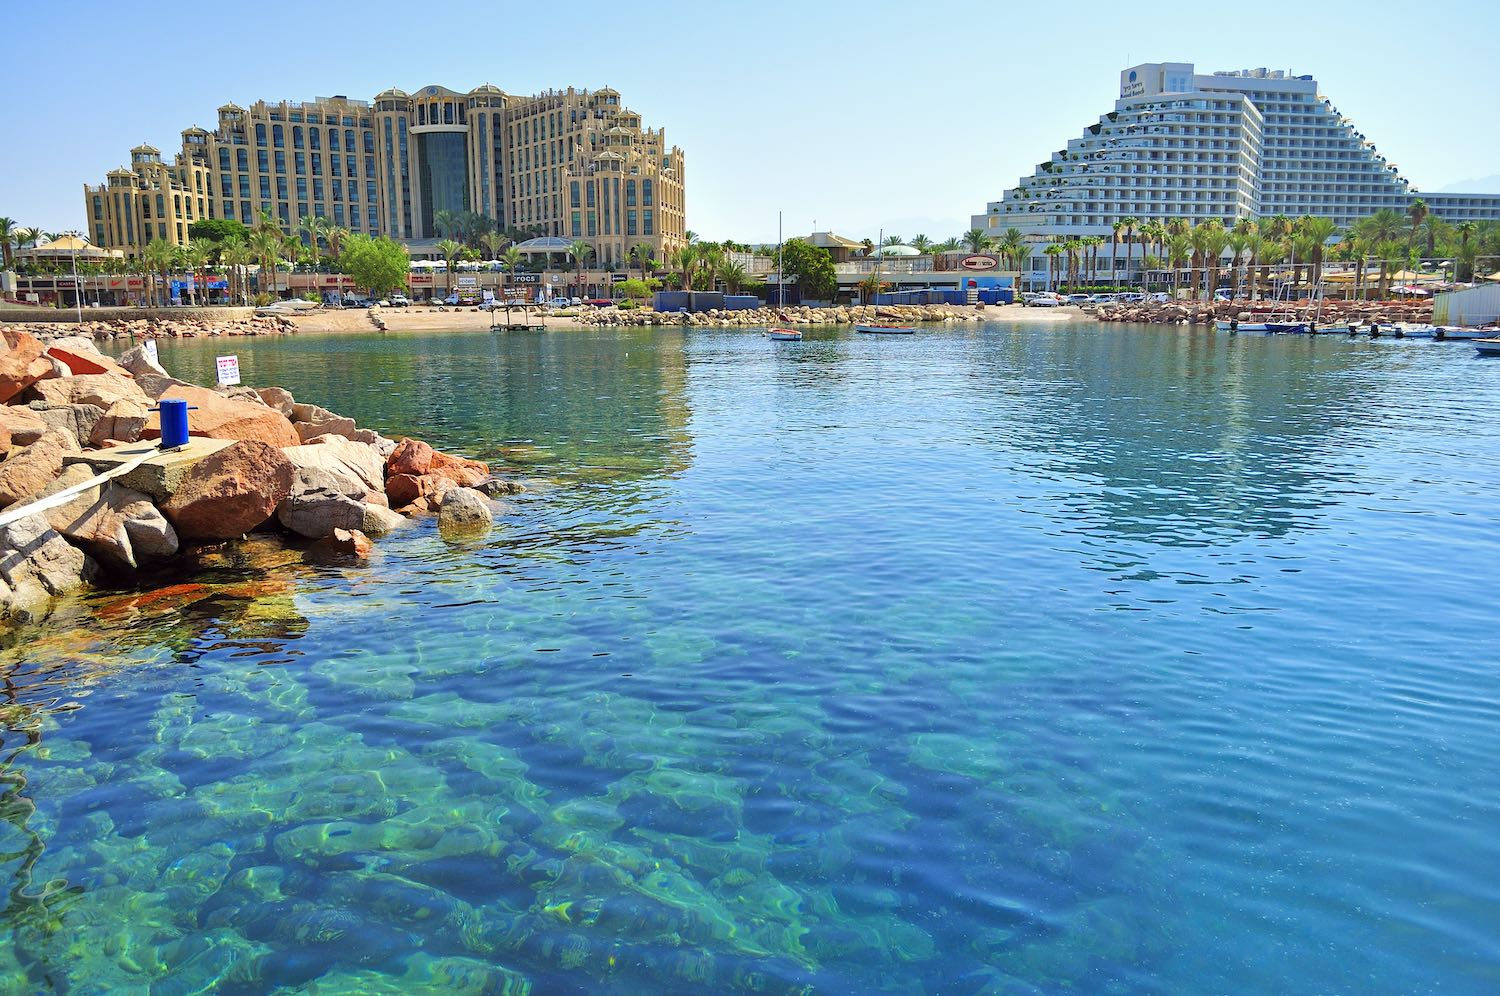 Eilat Israel - Where is Hot in january